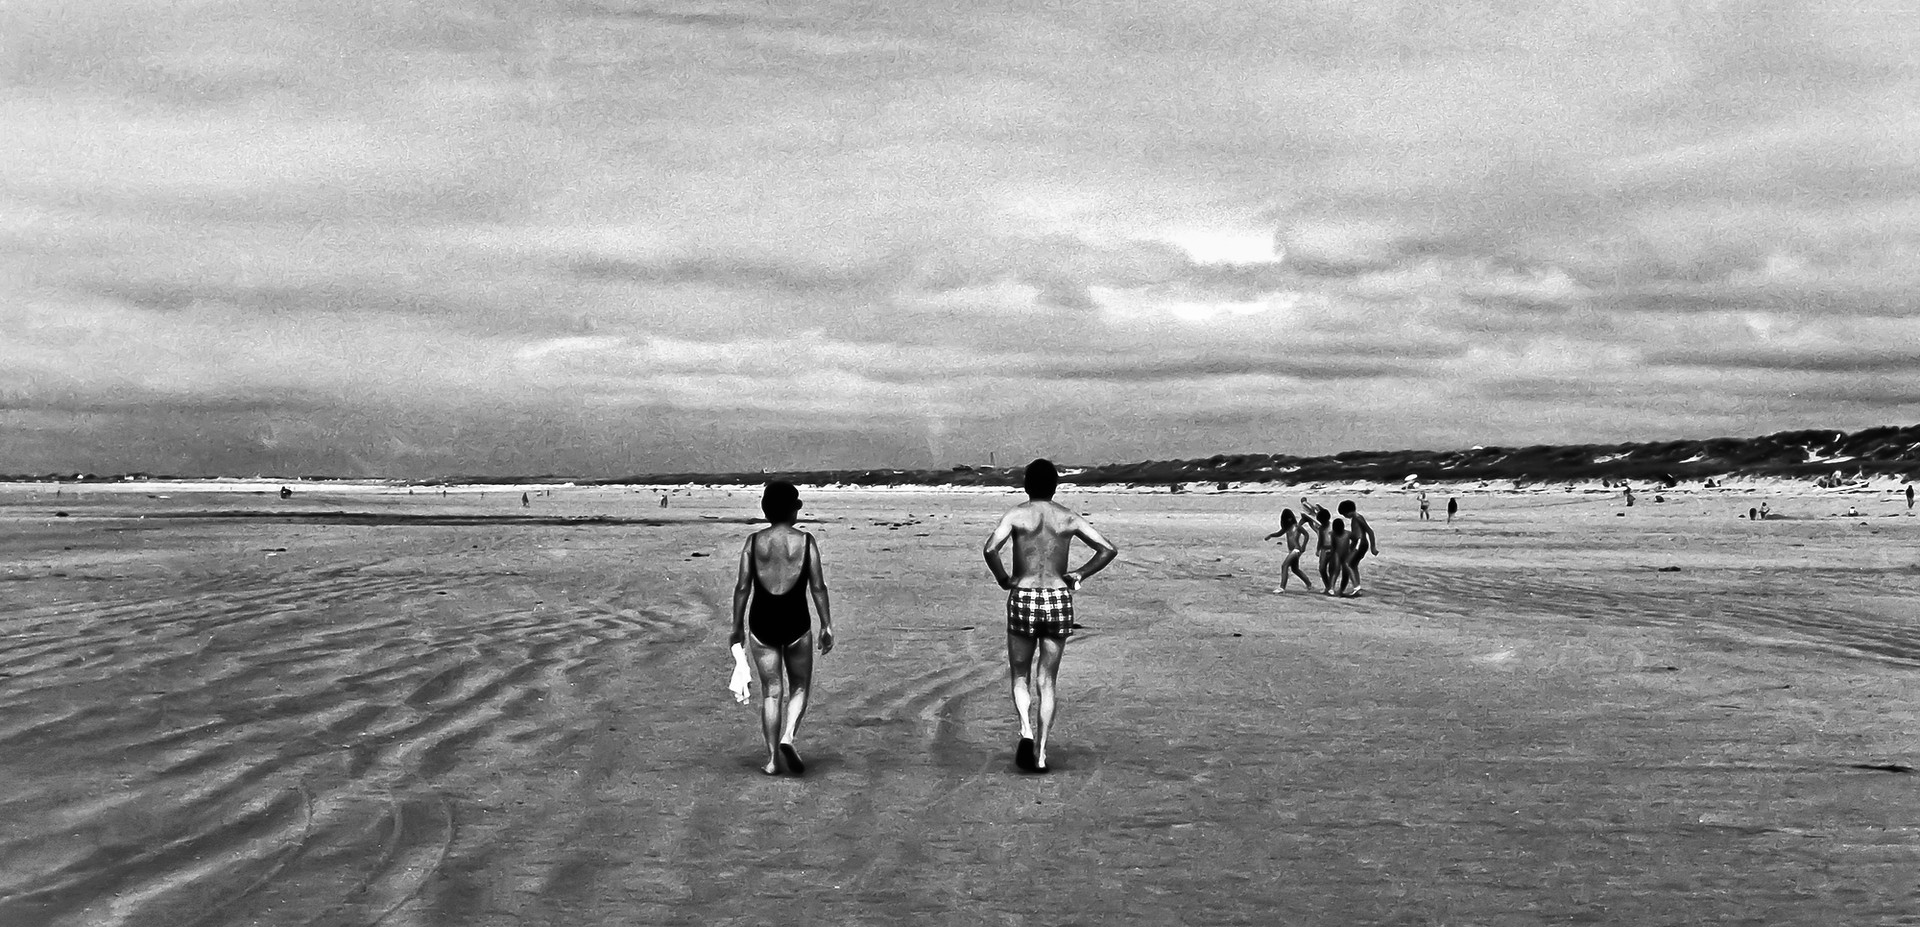 Brittany, France 1982